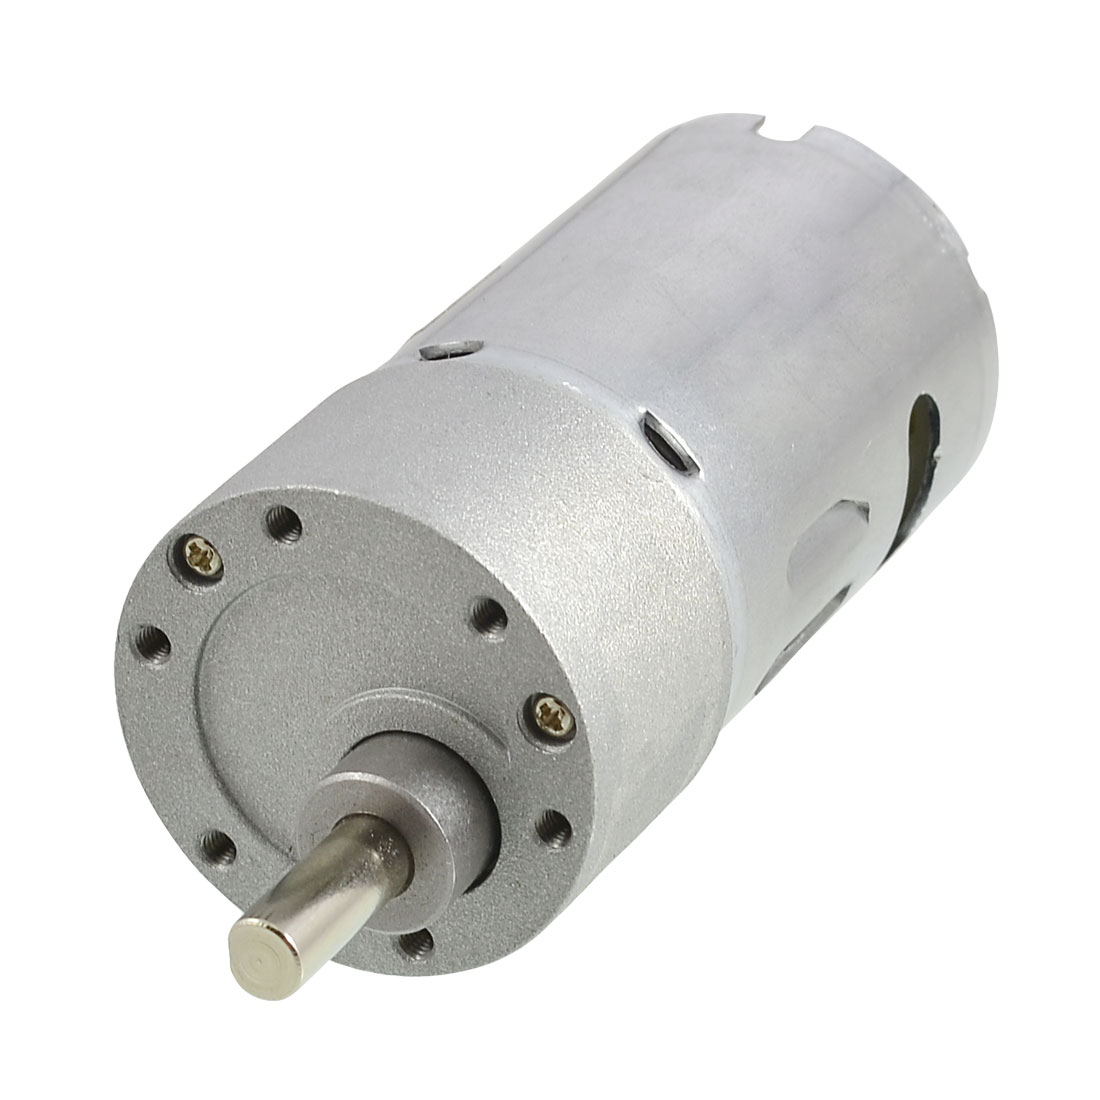 Repairing Part 6mm Shaft Dia DC 12V 1200RPM 2A Electric Geared Motor 37GB